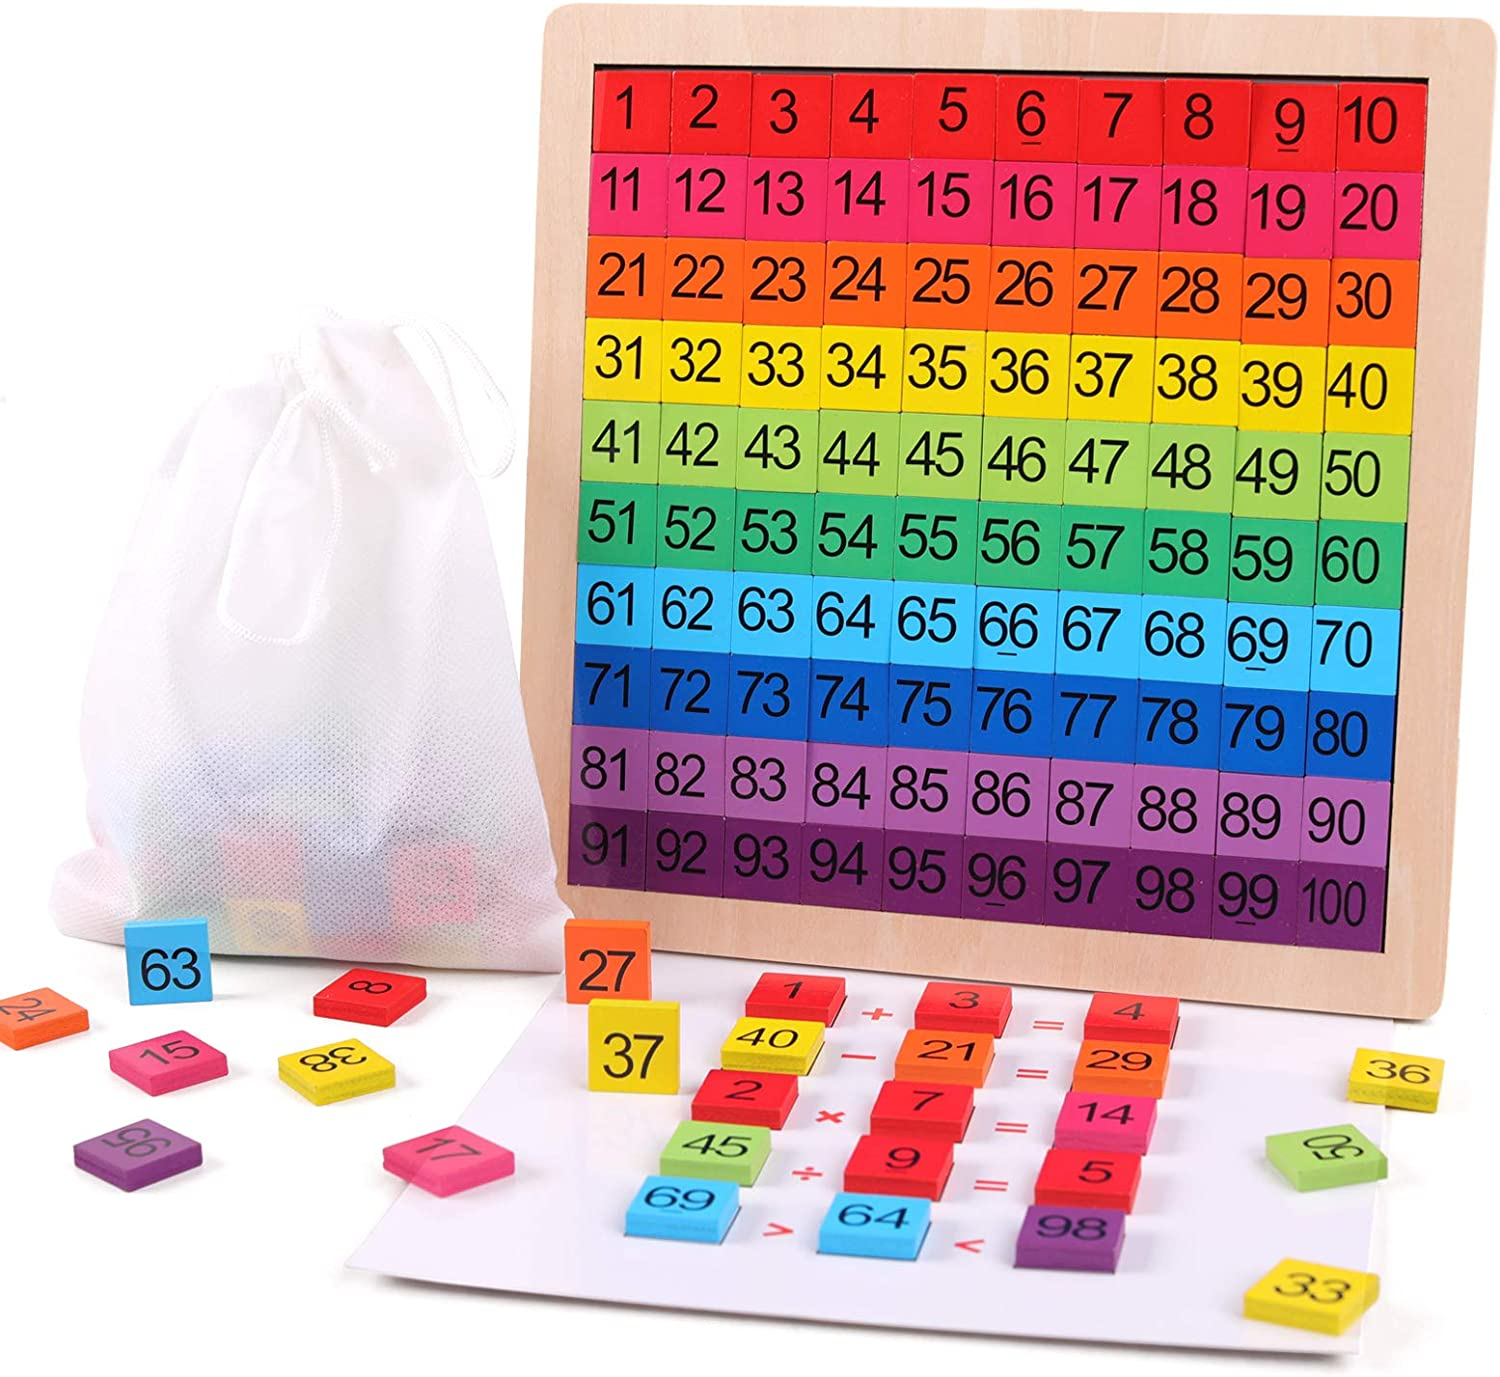 GEMEM Wooden Montessori Math Counting Hundred Board Toys, 1-100 Consecutive Numbers Learning & Educational Game Toy for Kids Toddlers 3 Year Old with Storage Bag